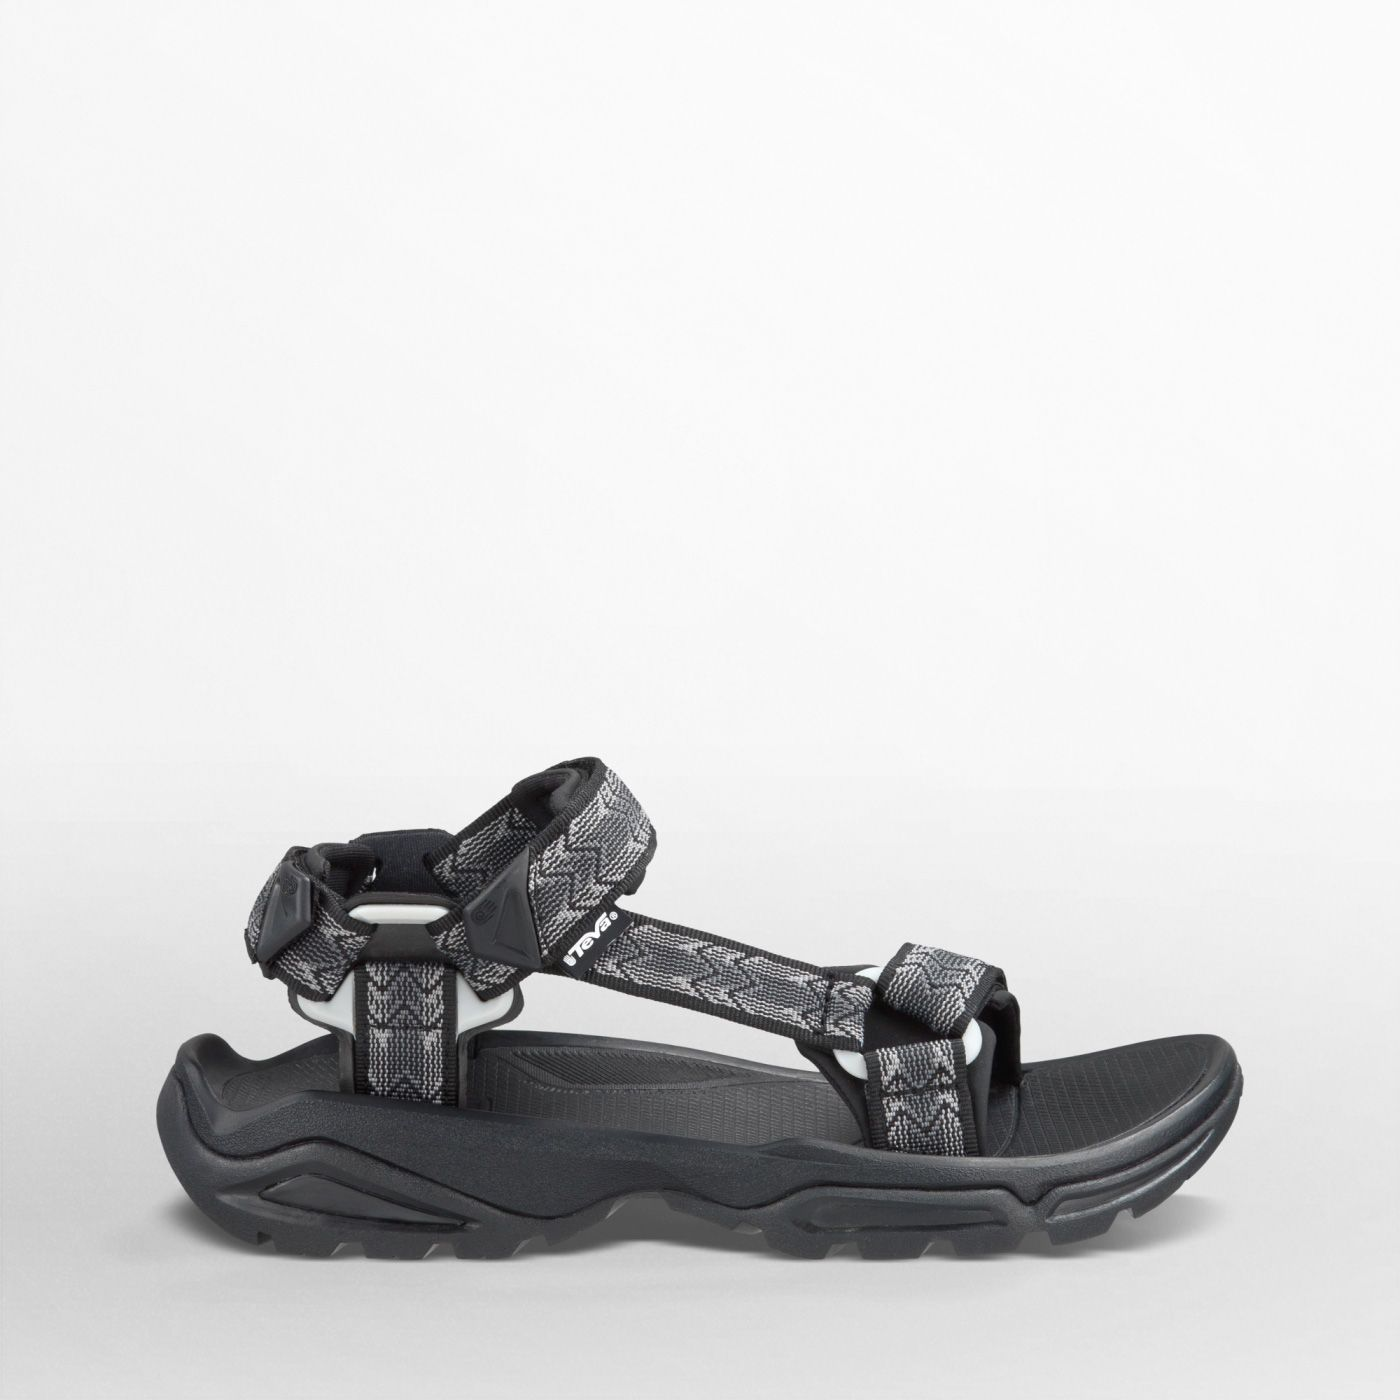 c2875222e Free Shipping   Free Returns on Authentic Teva® Men s Terra Fi 4 sandals.  Shop our collection of sandals for men at Teva.com